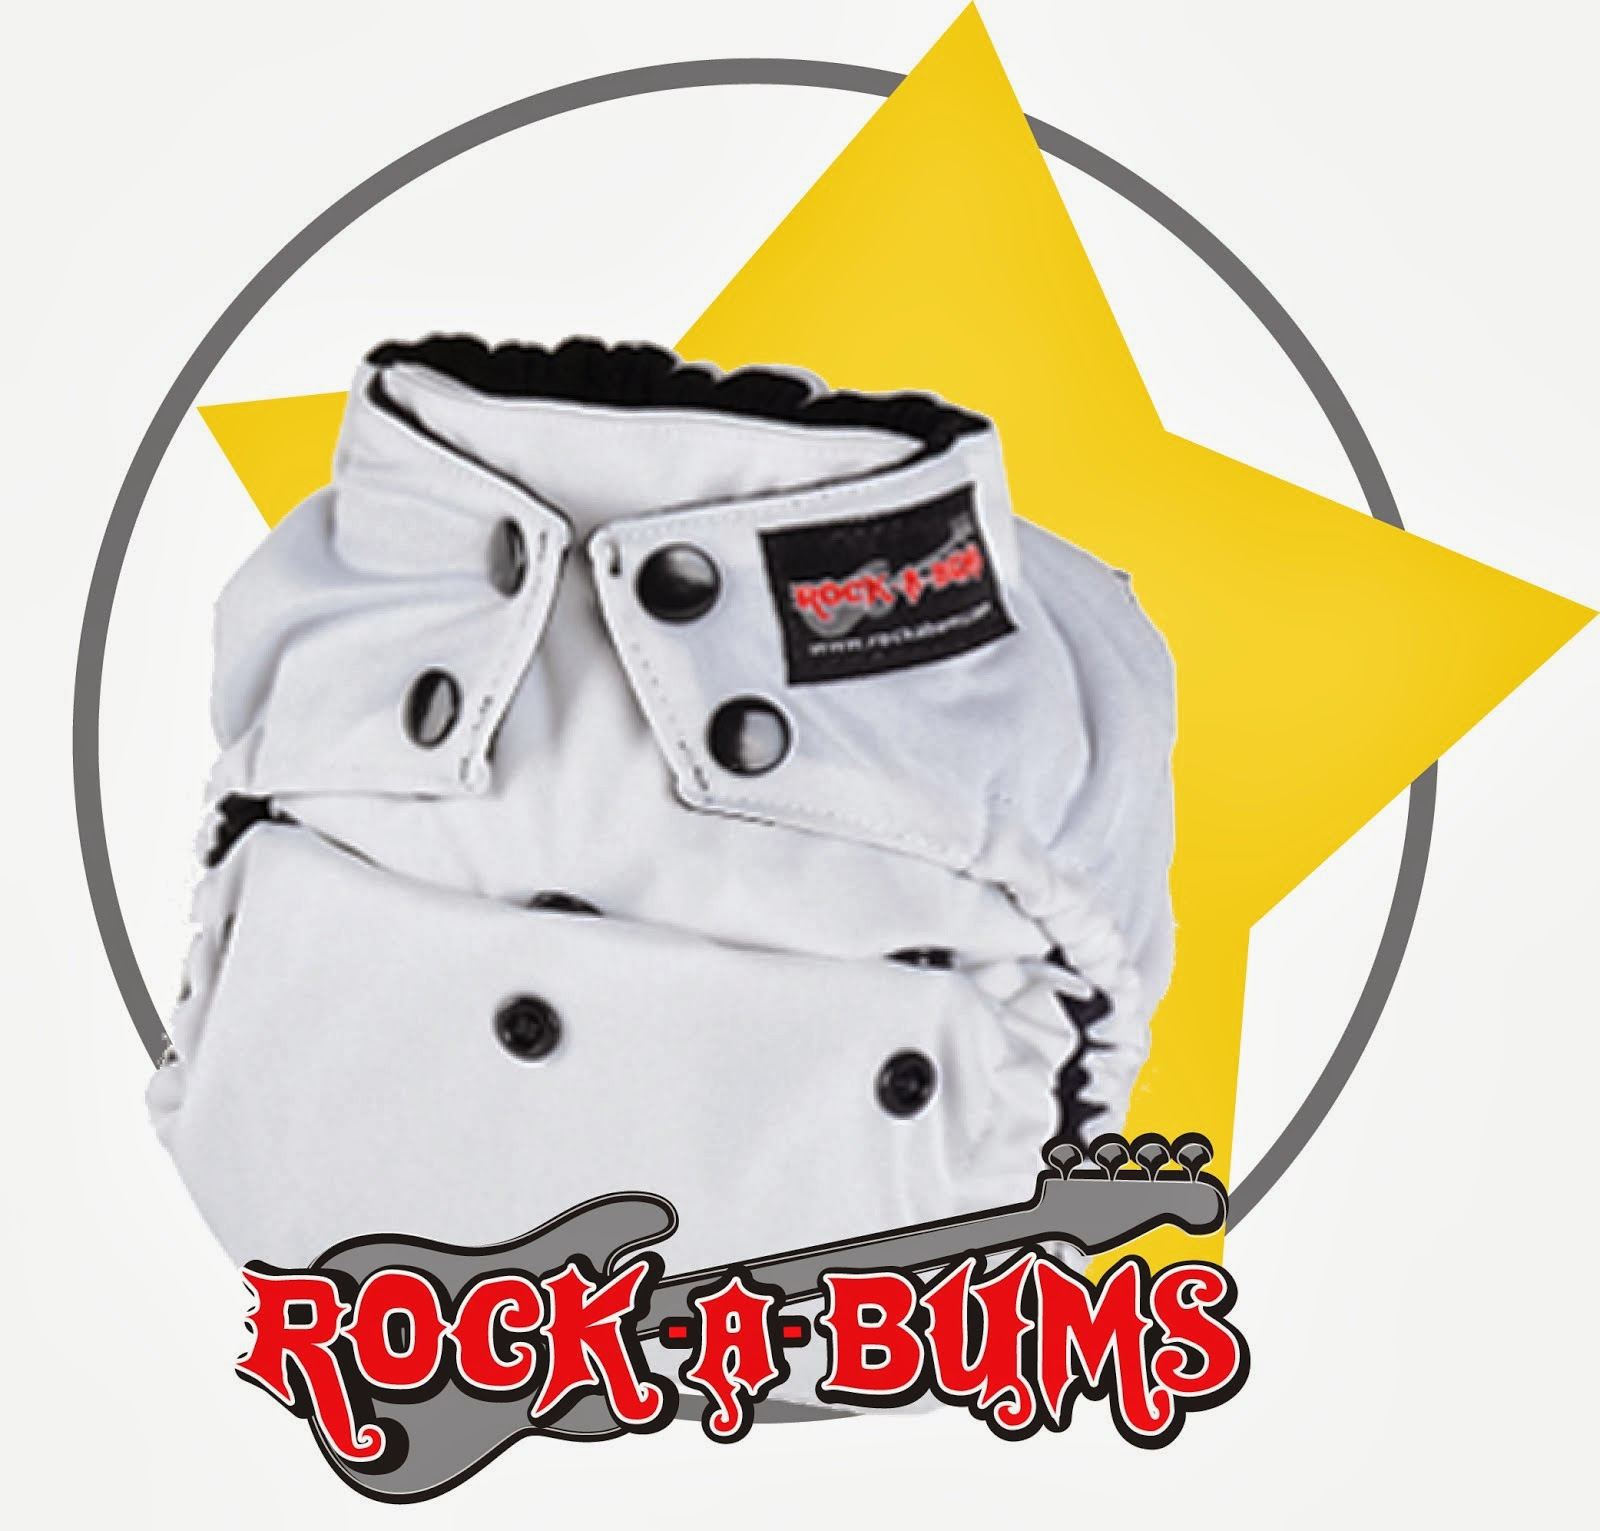 Order Rock-A-Bums here: